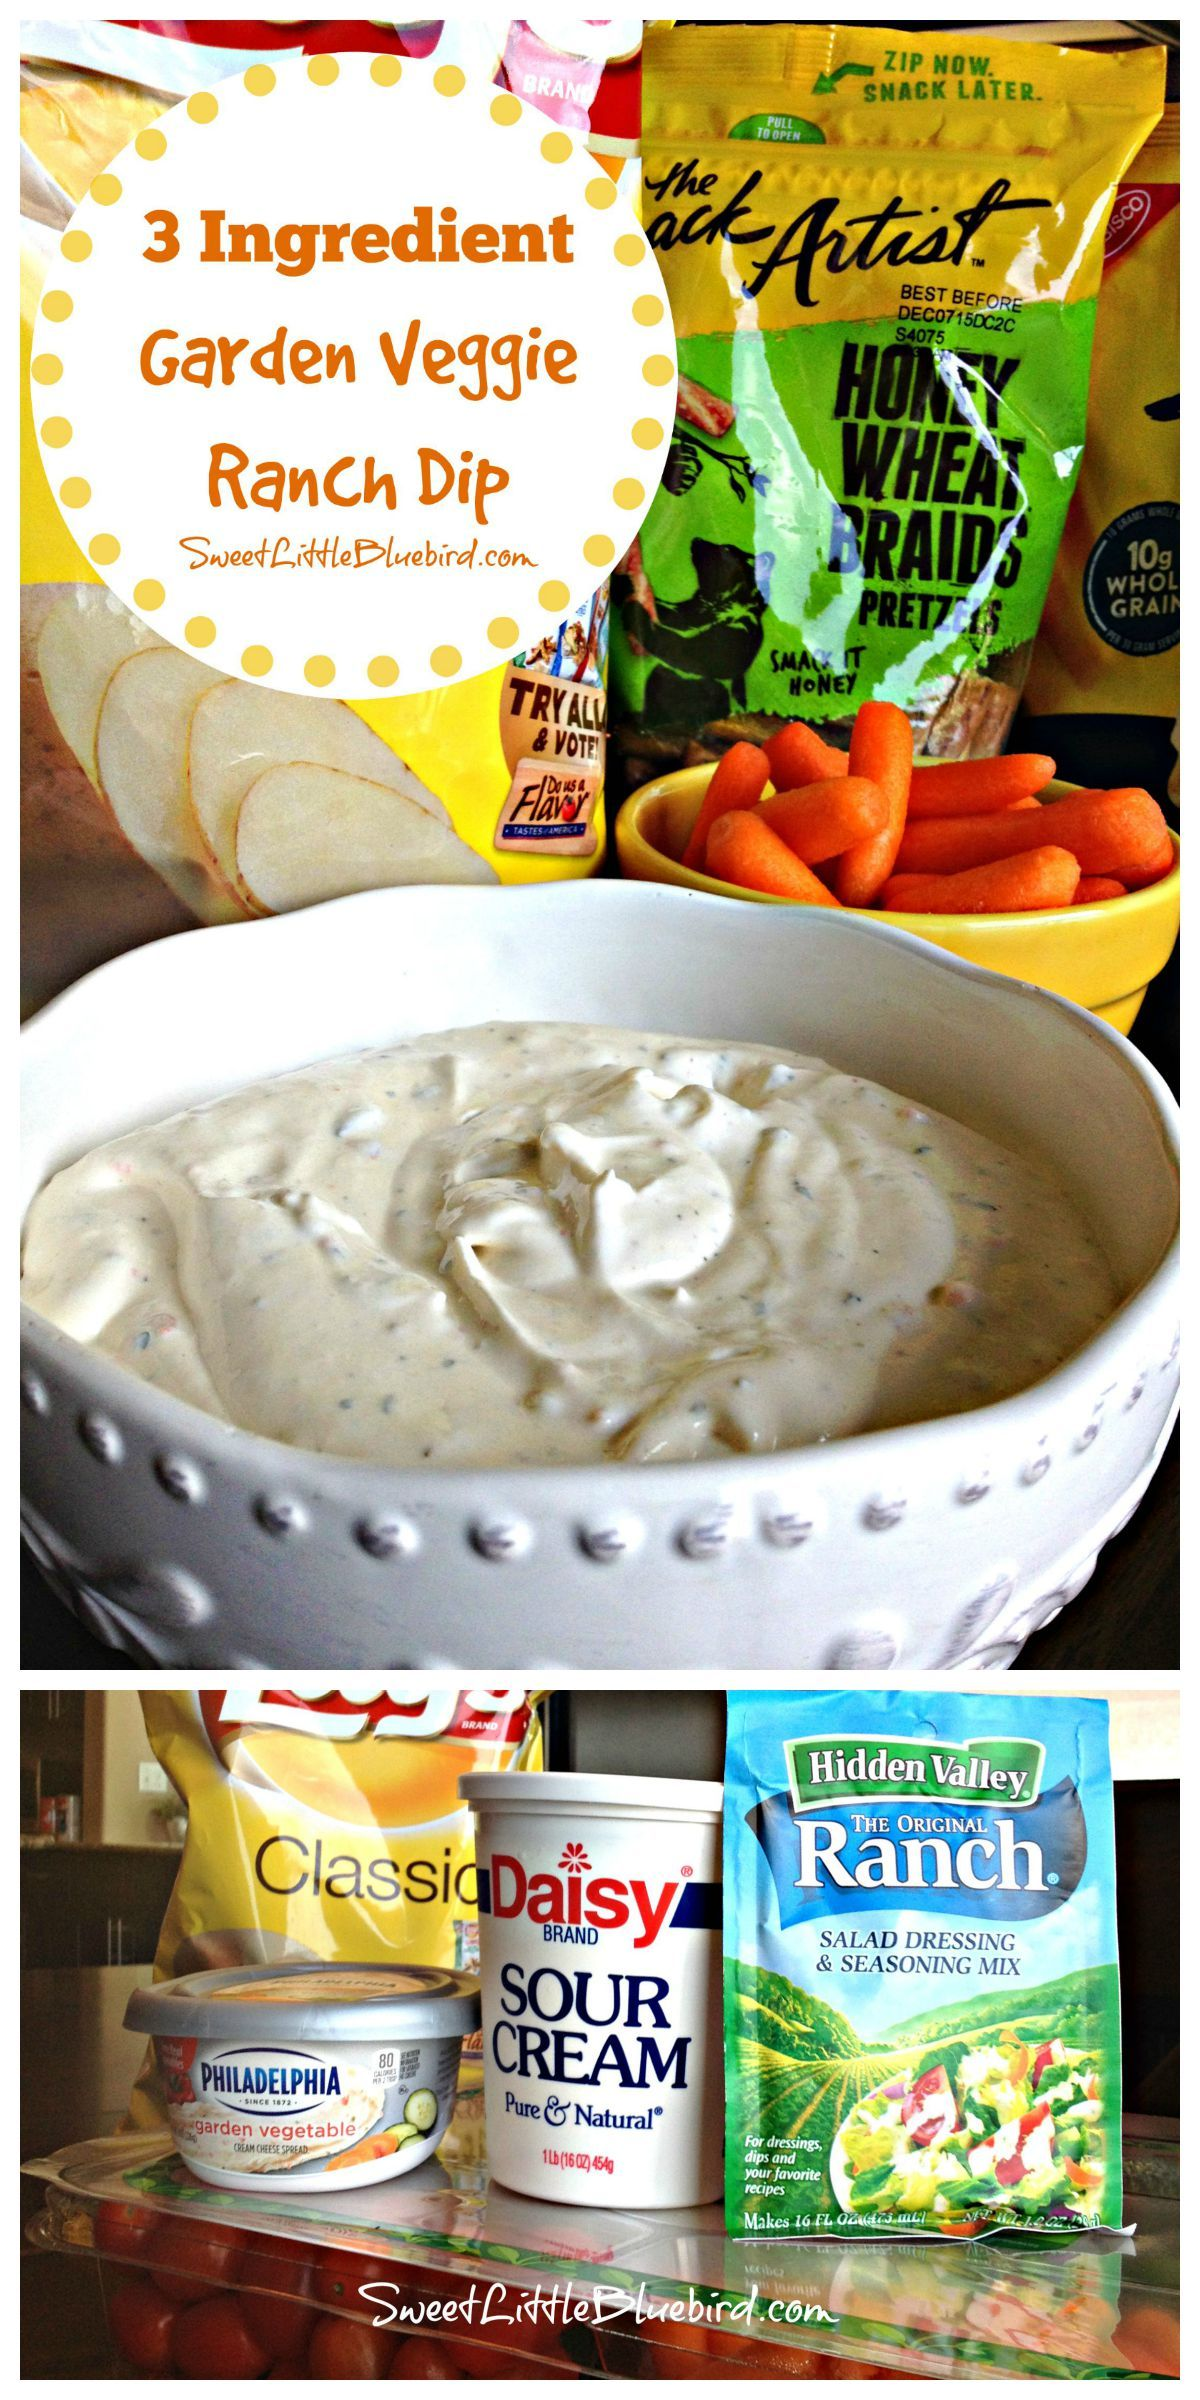 3 Ingredient Garden Veggie Ranch Dip Easy Diy Food Recipes Appetizers Easy Snacks